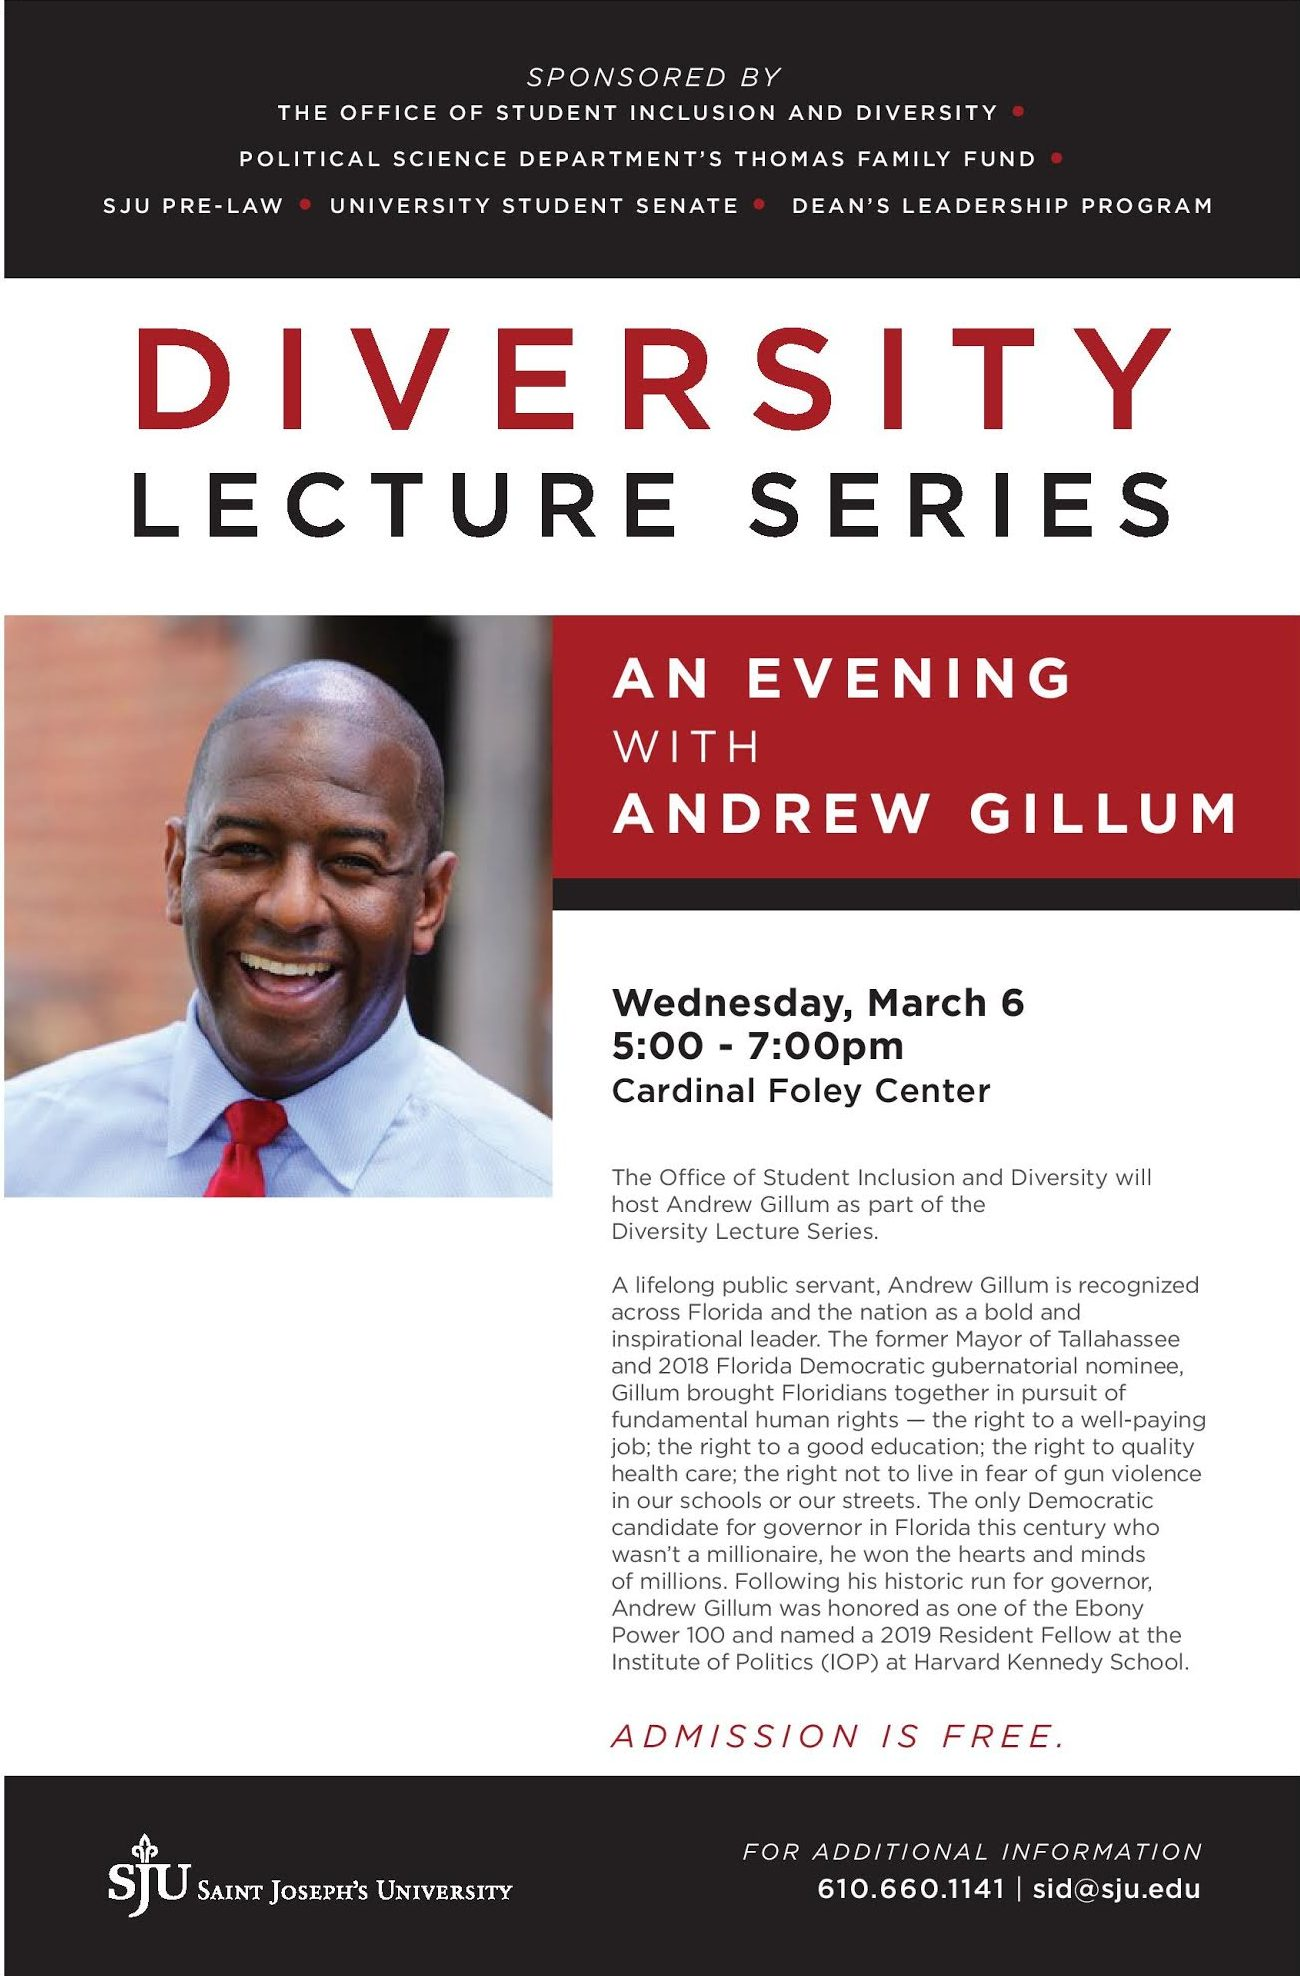 Poster of Andrew Gillum event